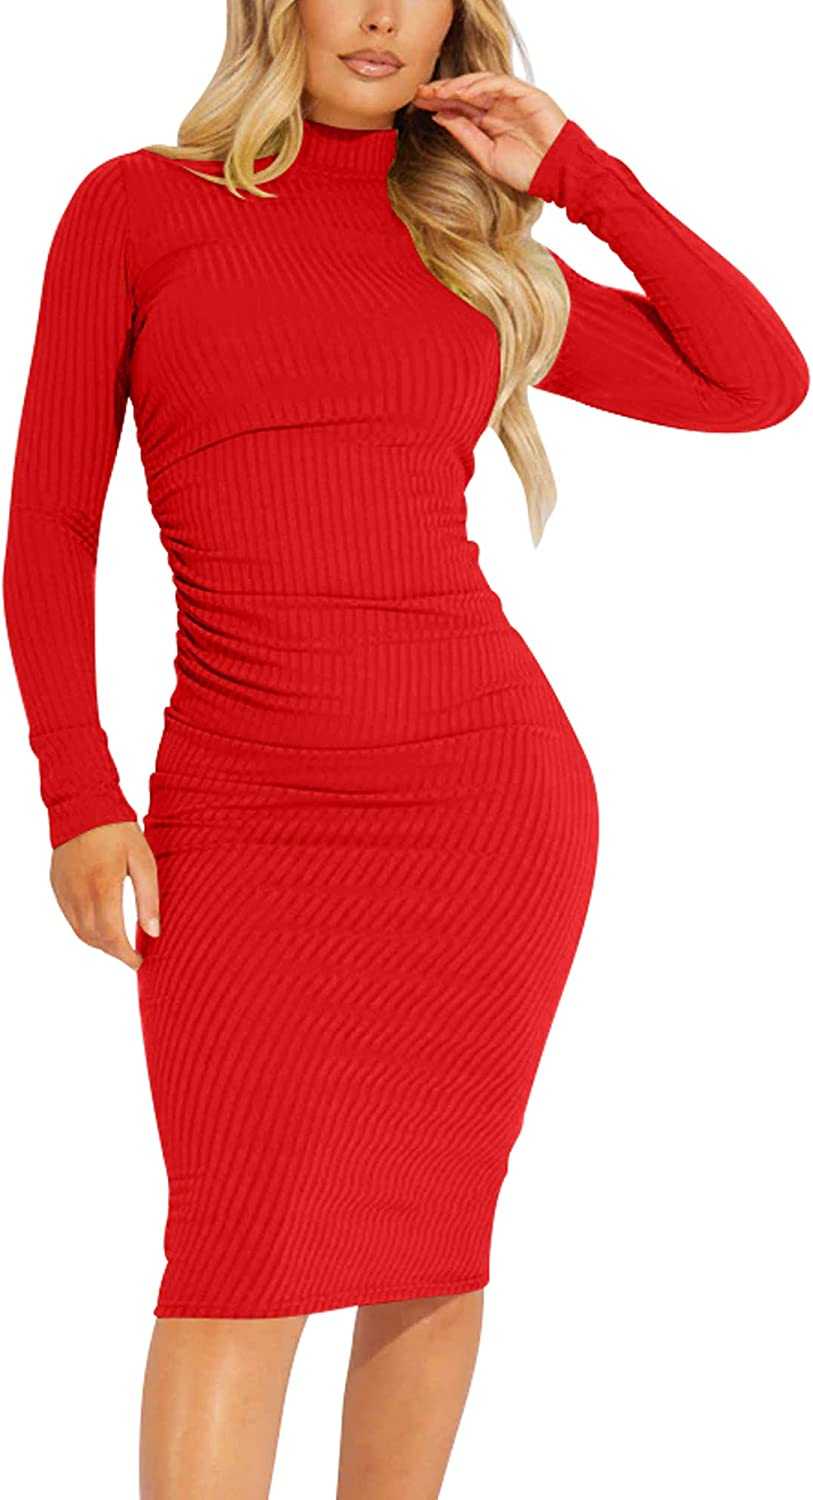 Kaximil Women's Ribbed Basic Casual Mide Dress Long Sleeve Bodycon Ruched Club Dresses